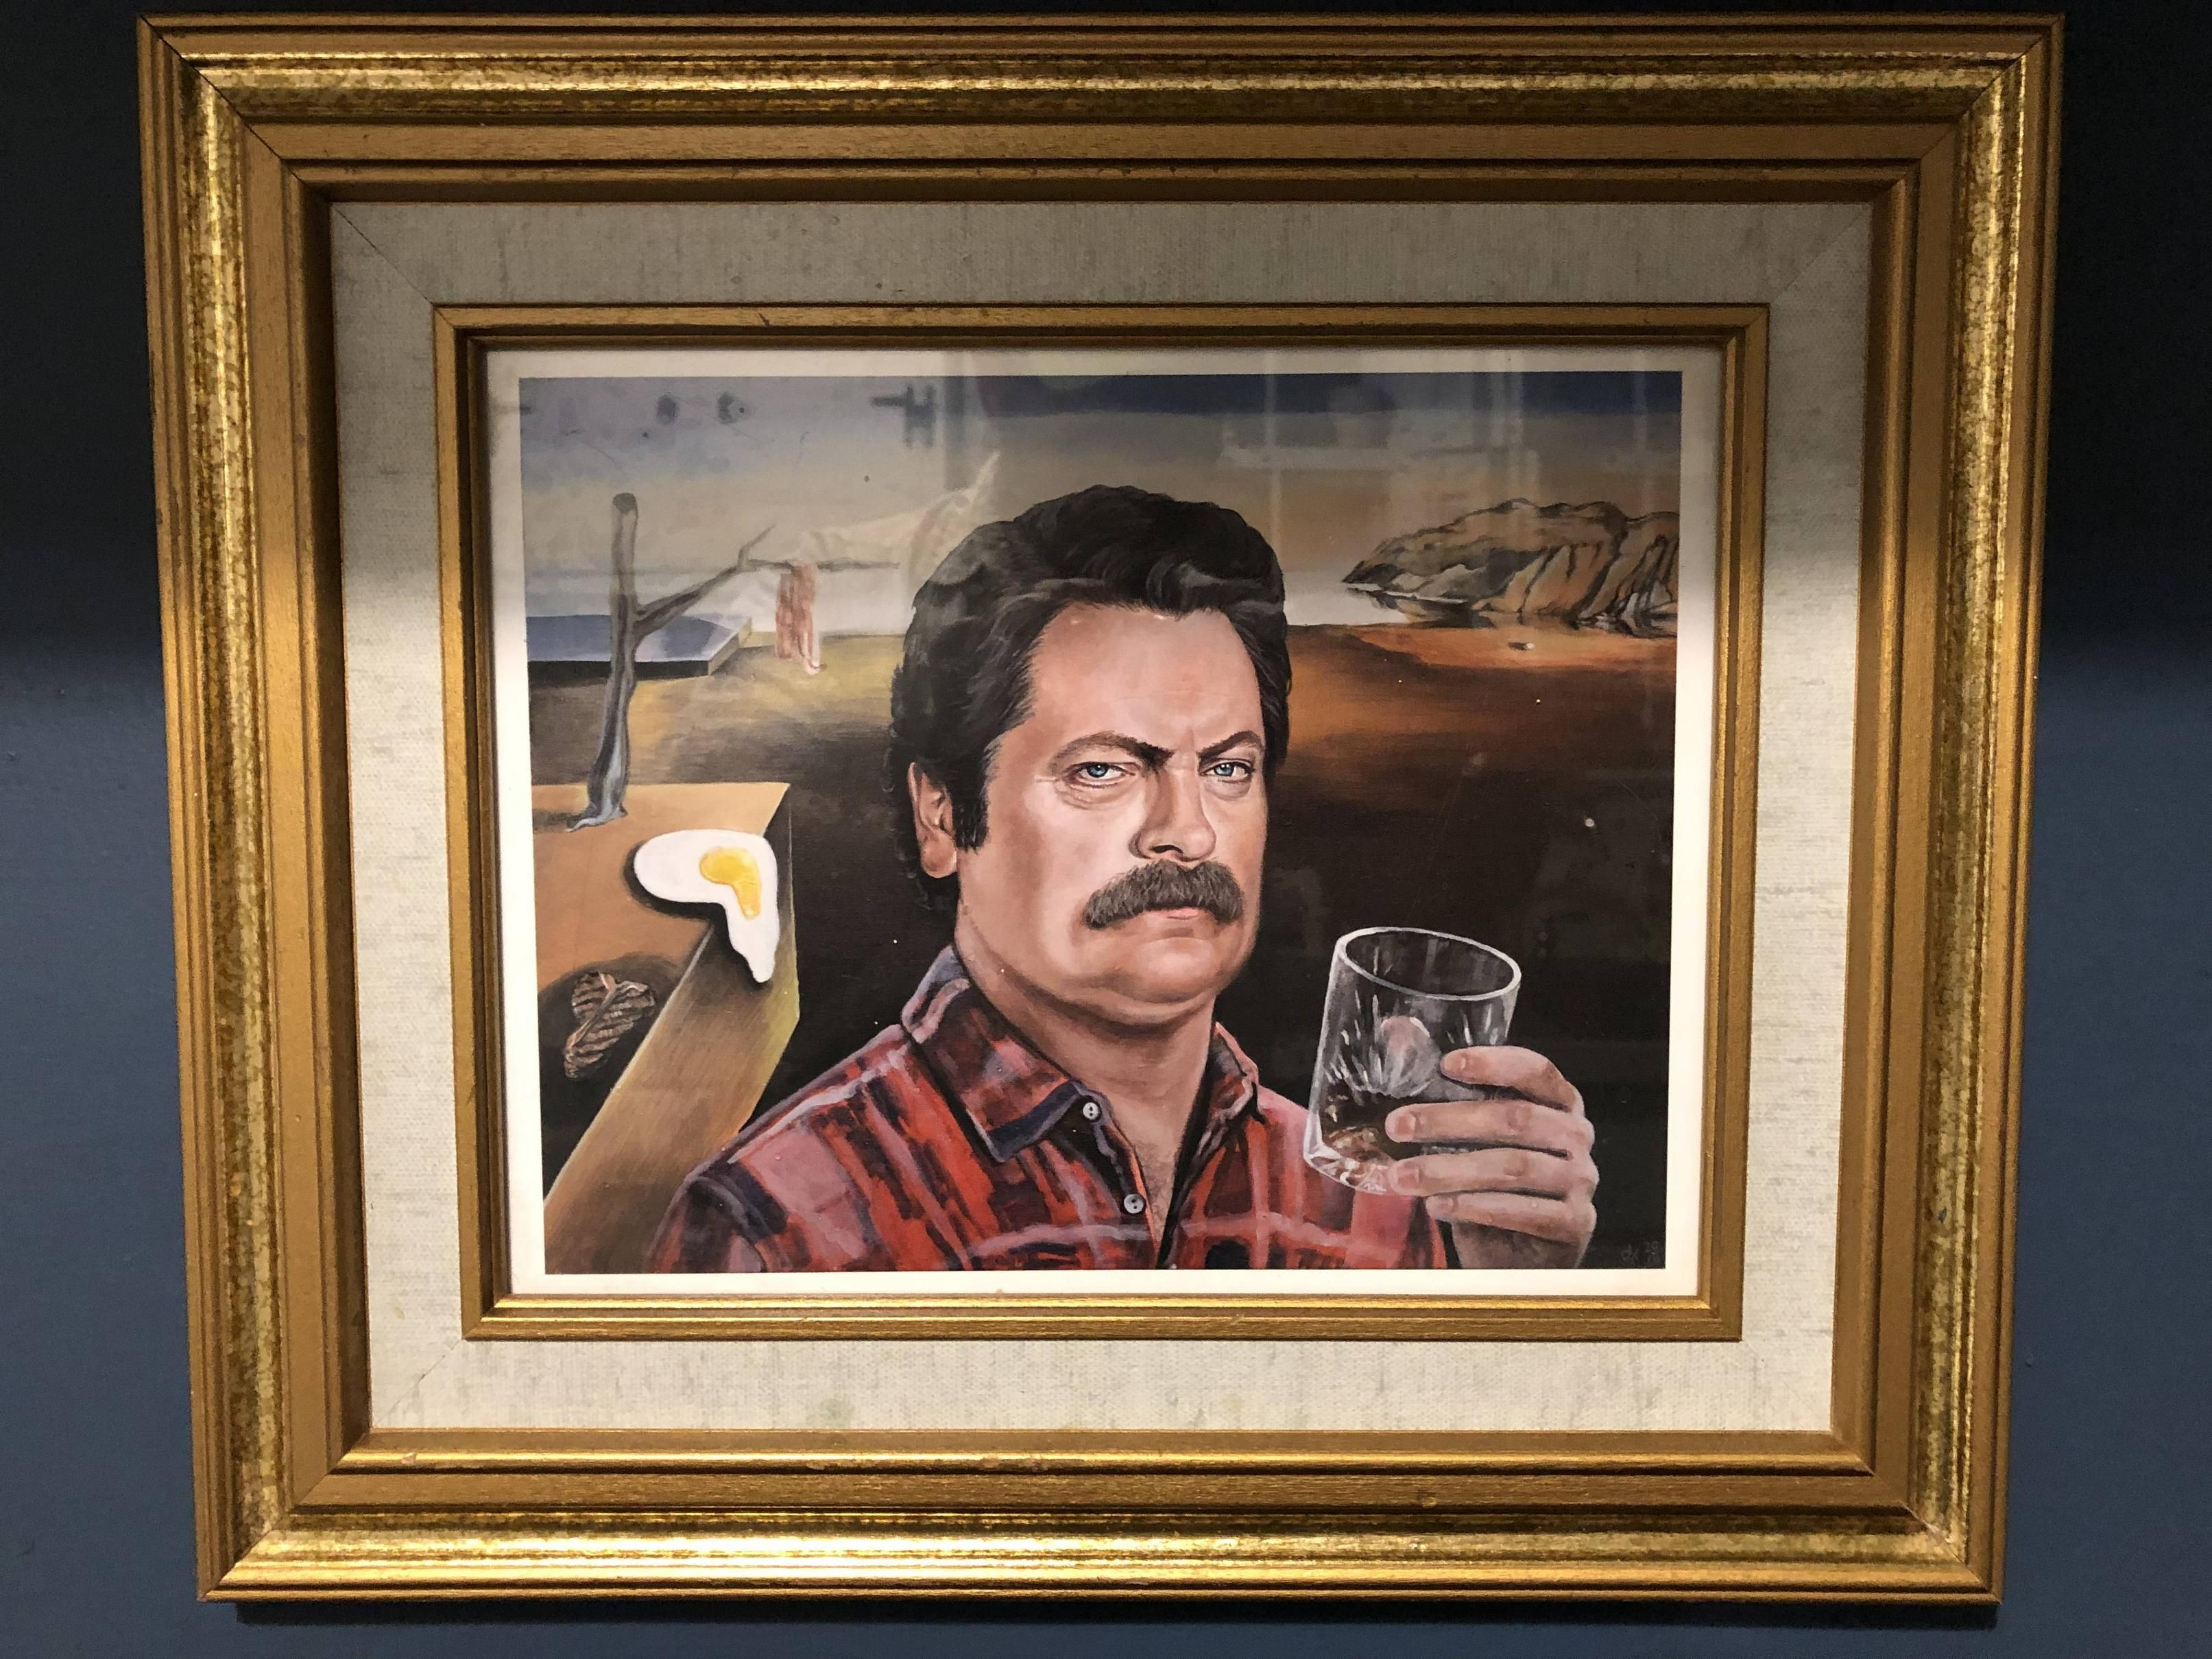 Painting in my air b-n-b this weekend: Ron Swanson in the style of Dali